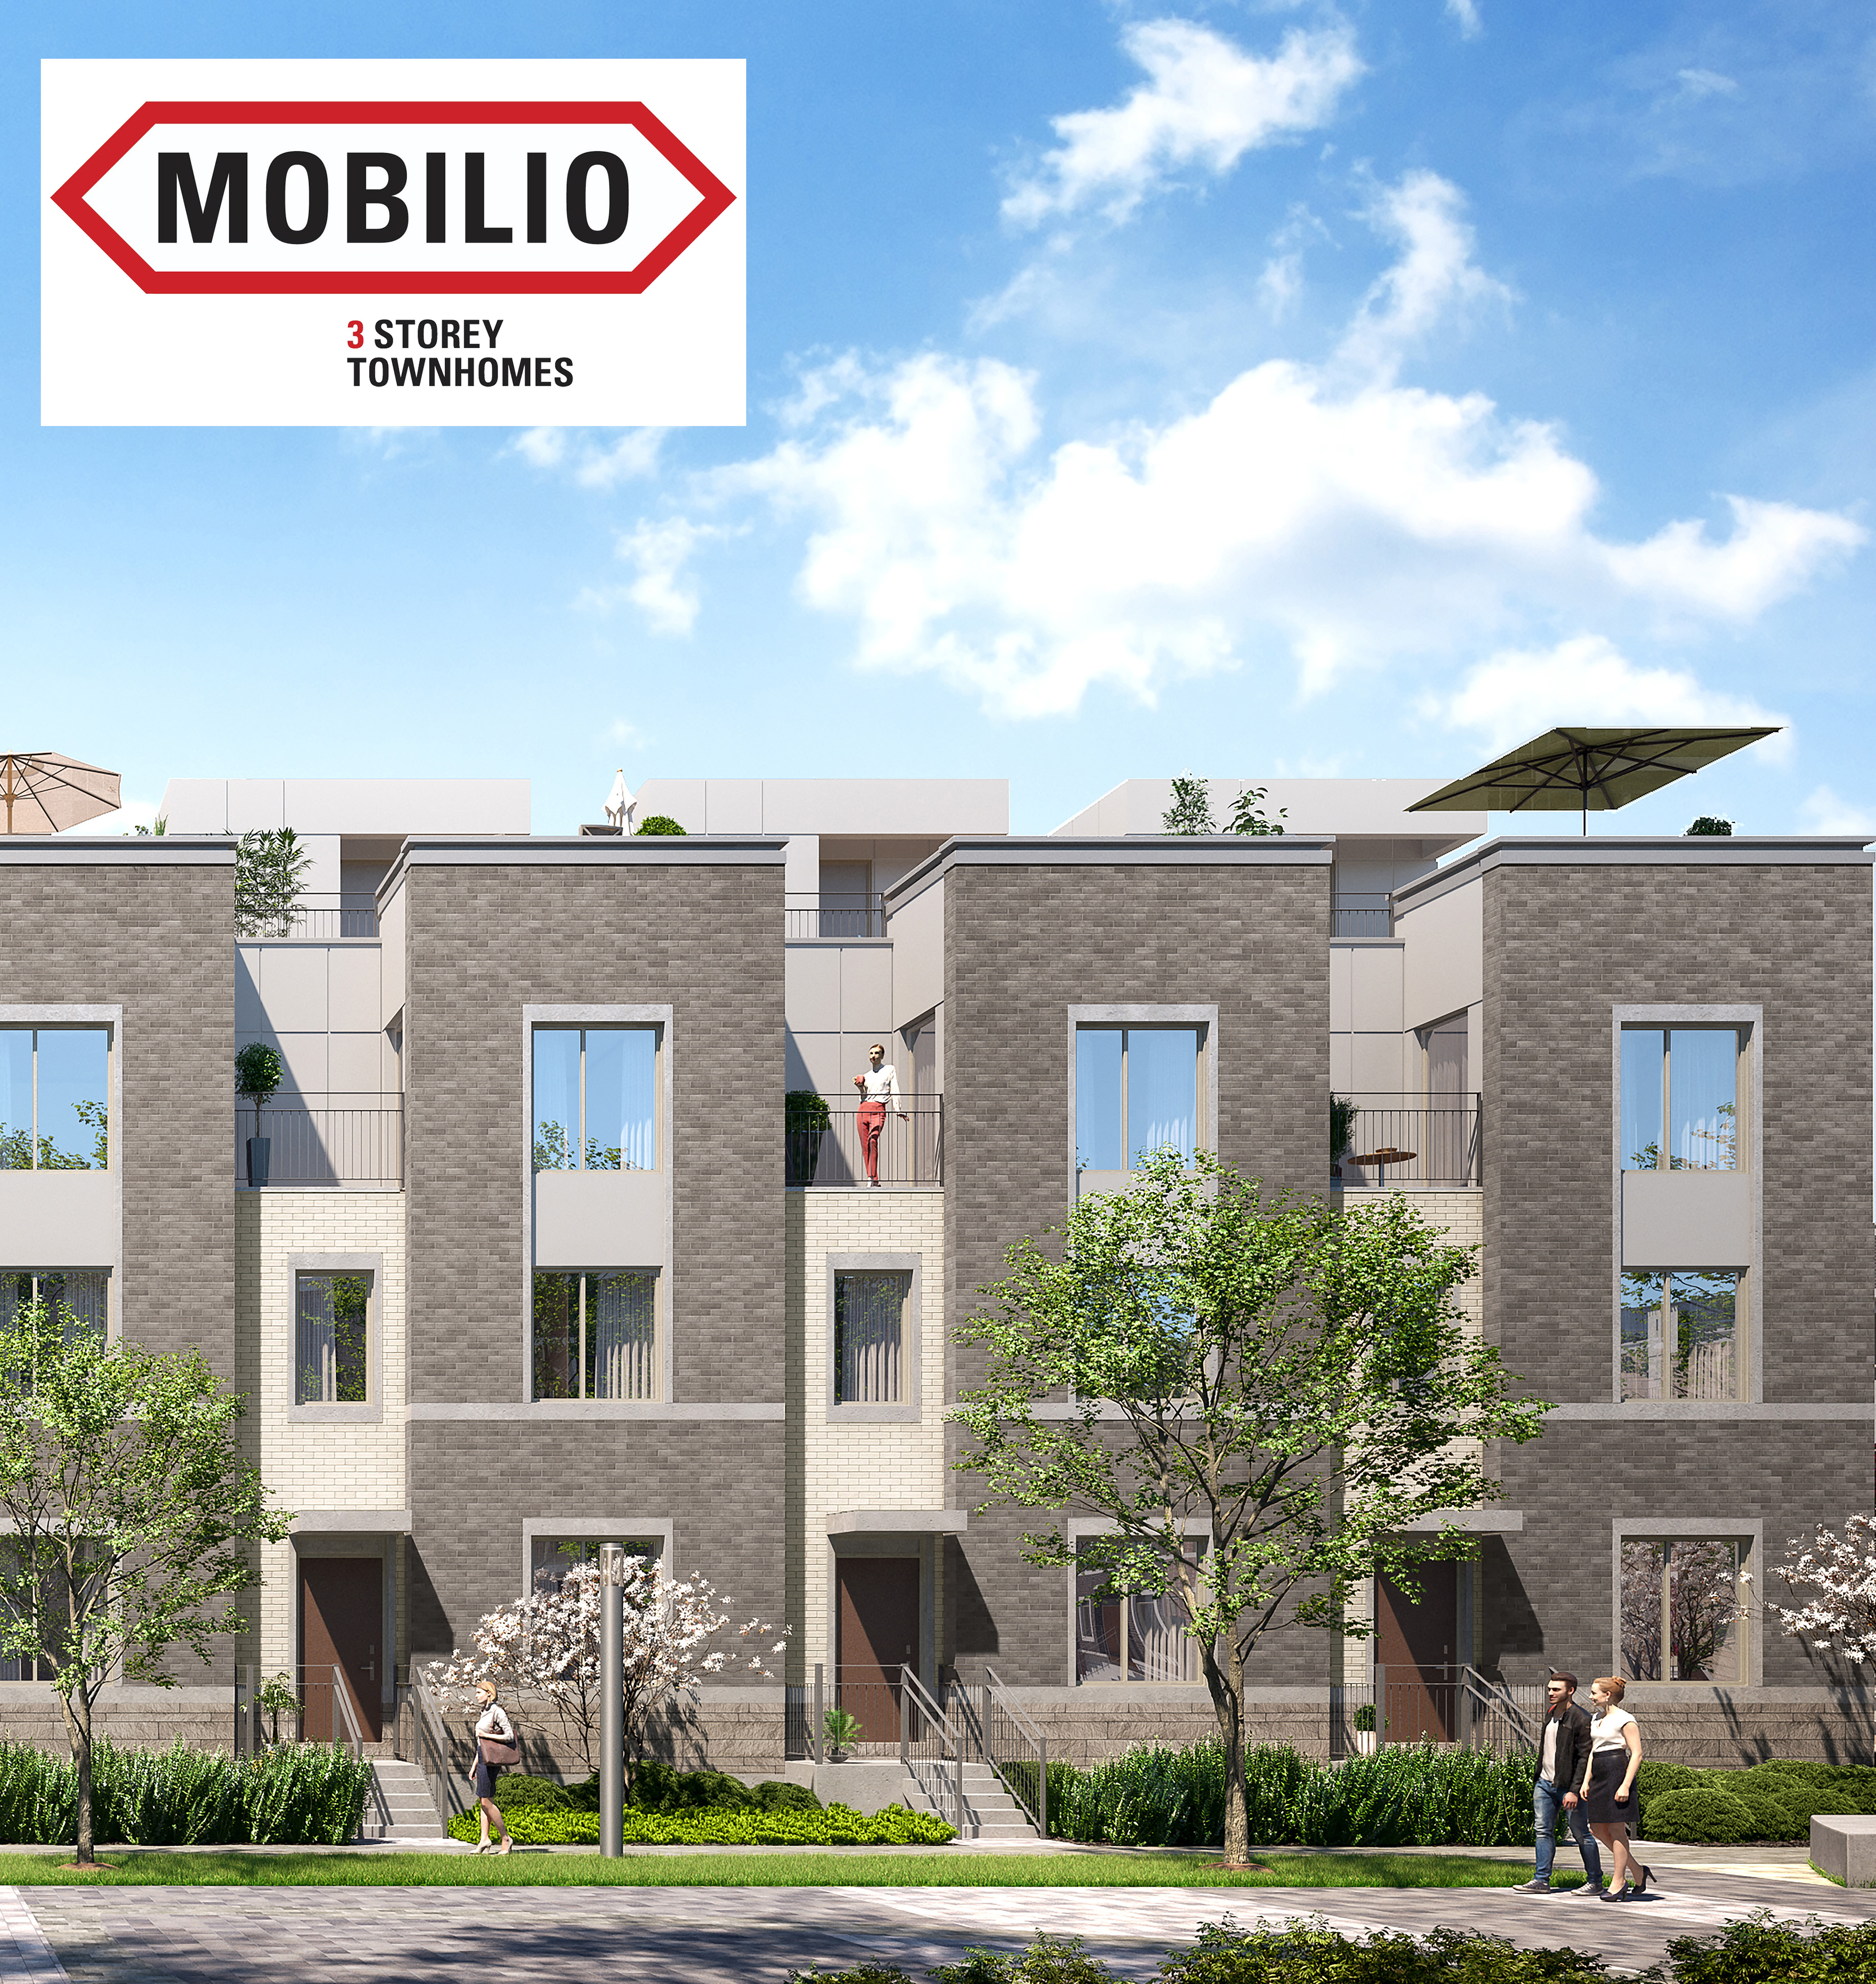 Mobilio Towns